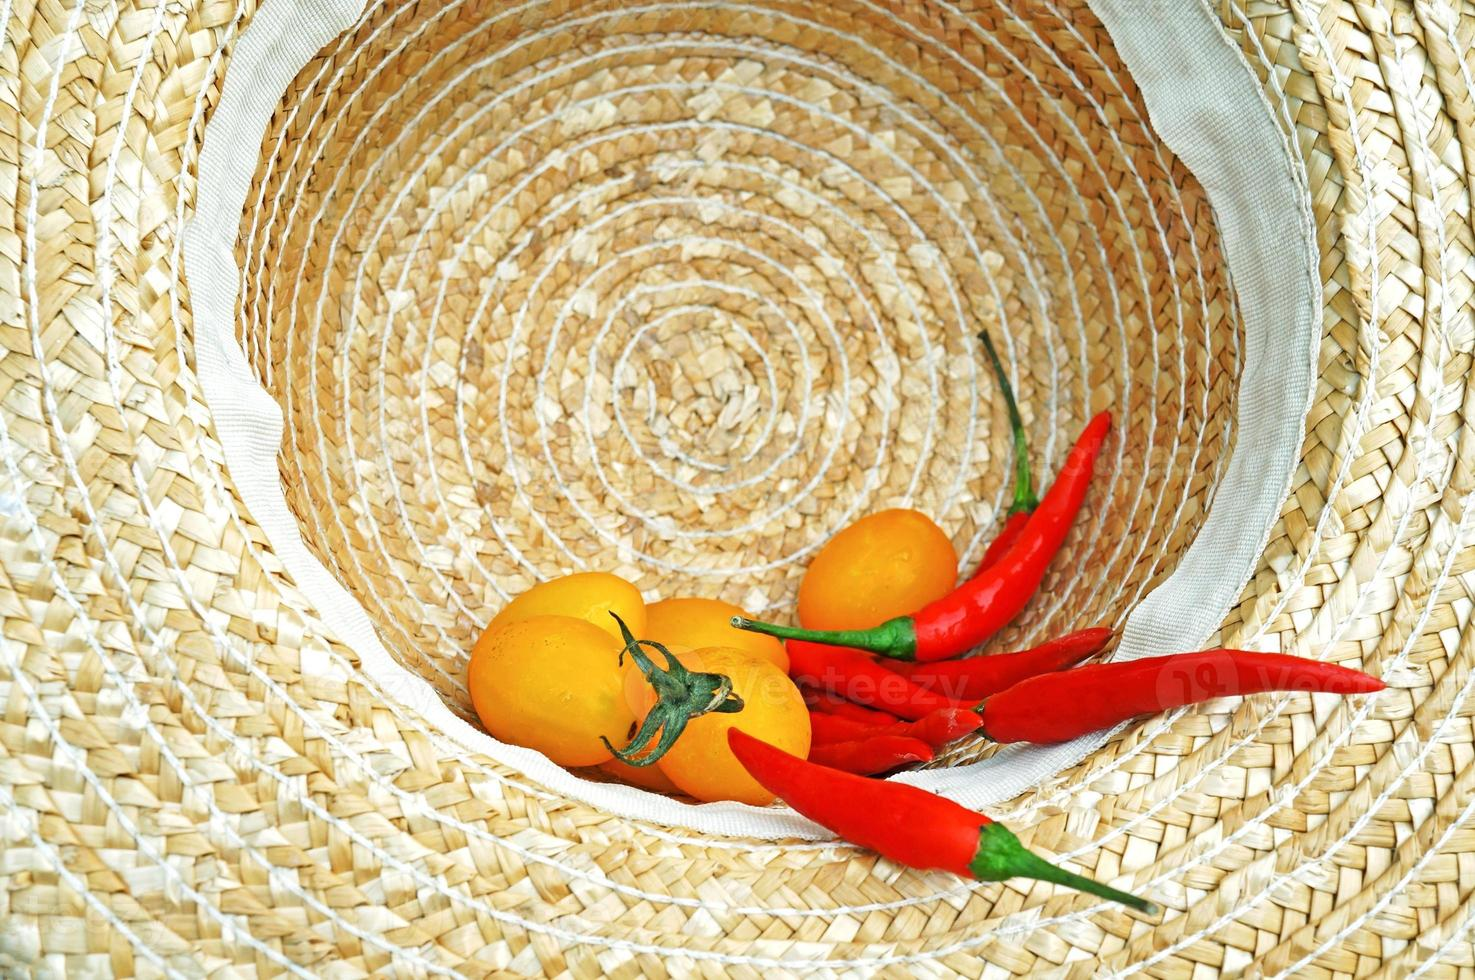 harvested tomatoes and chili in farmer's hat photo